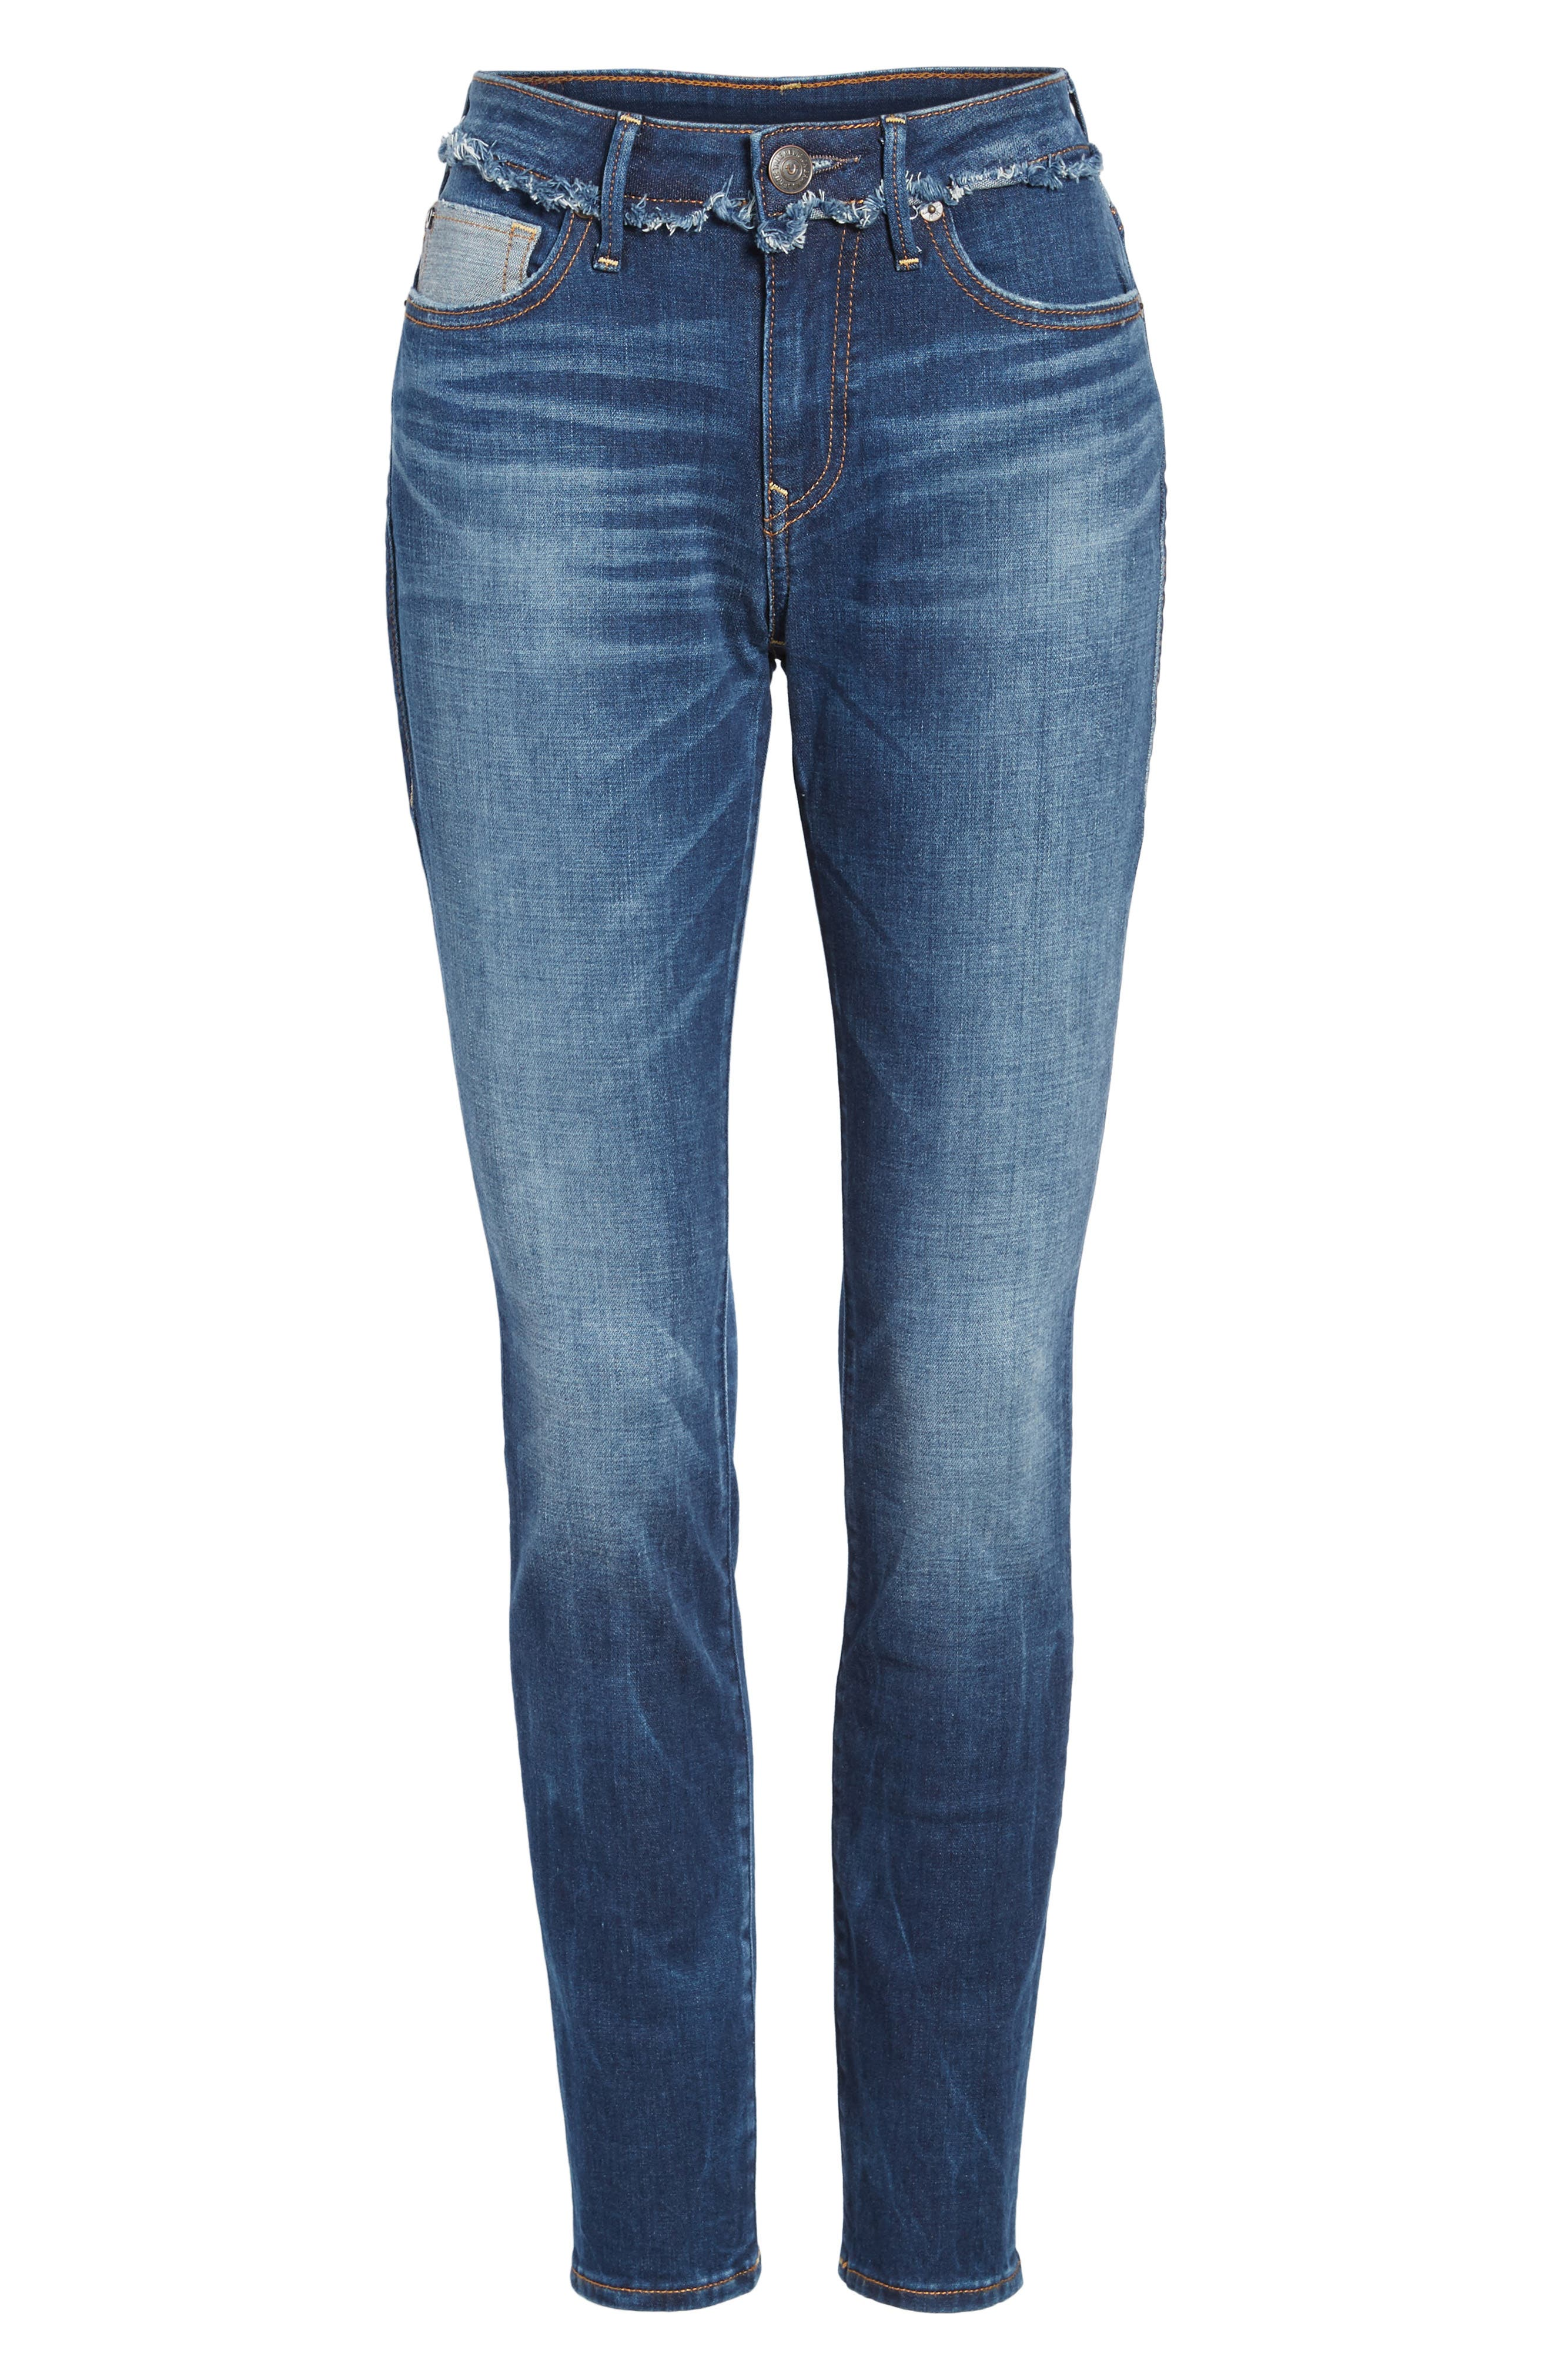 Jennie Deconstructed Skinny Jeans,                             Alternate thumbnail 6, color,                             401